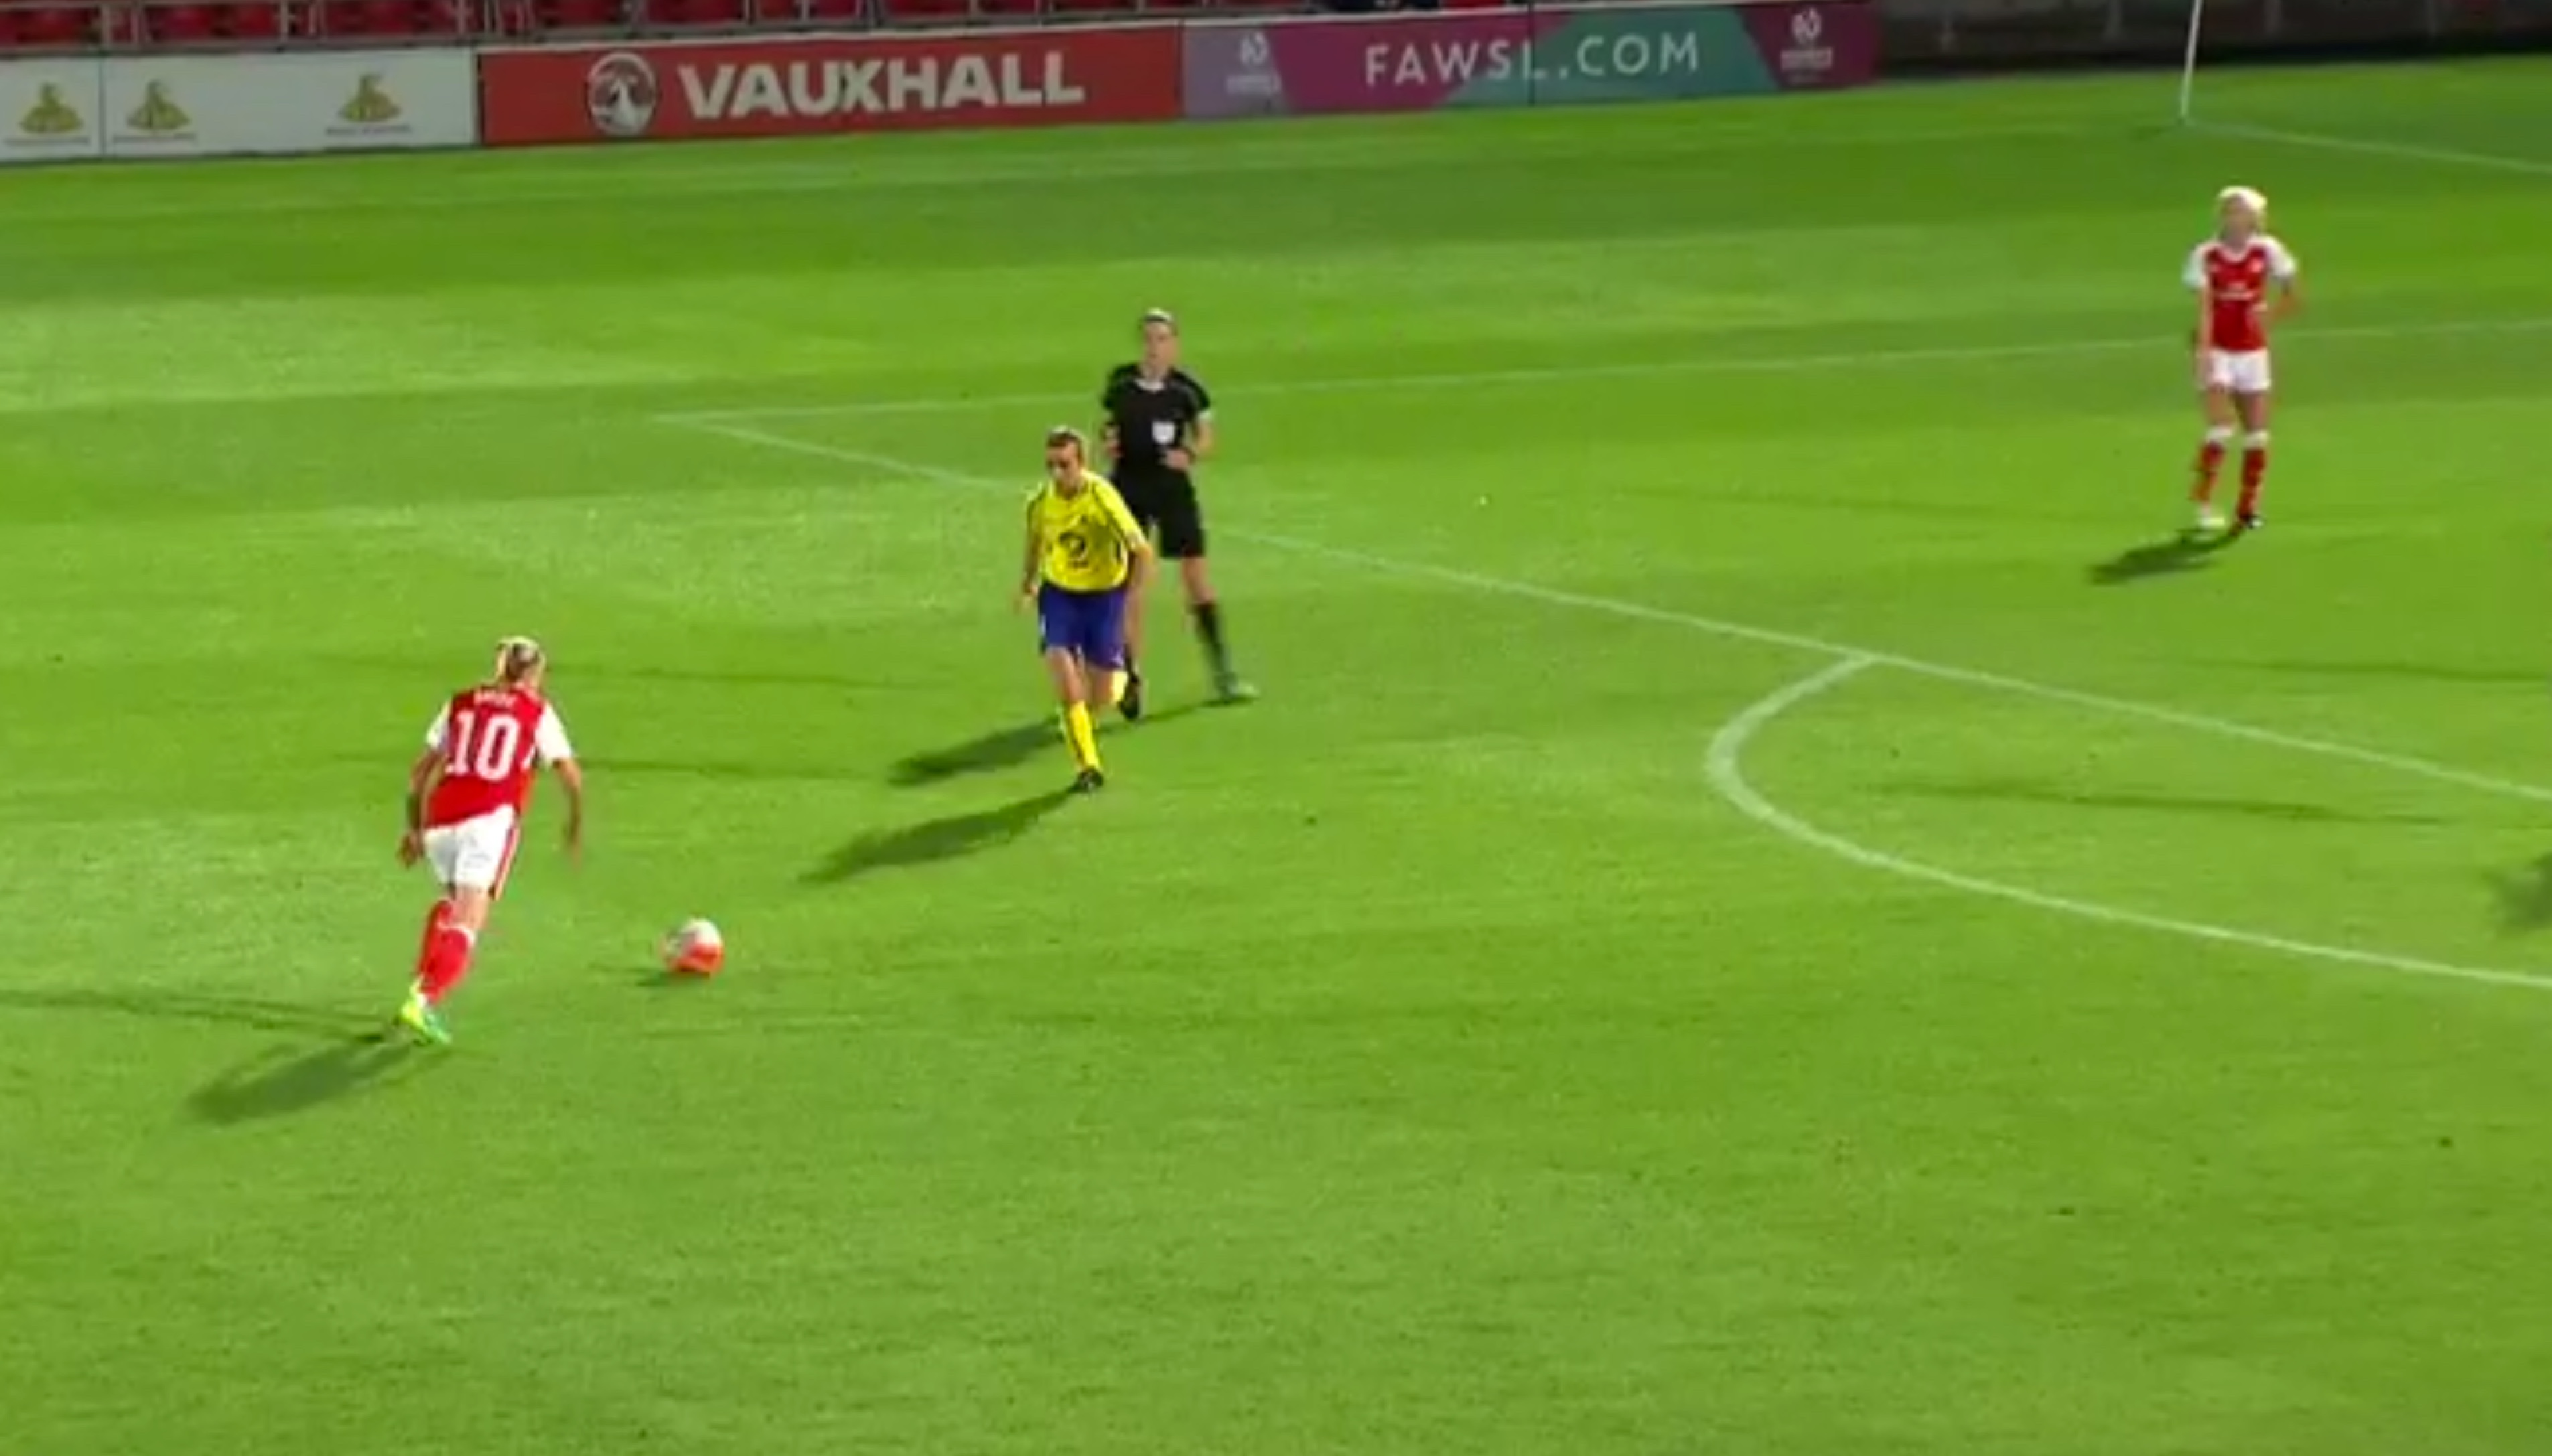 Kelly's nominated goal for BBC Sports FAWSL